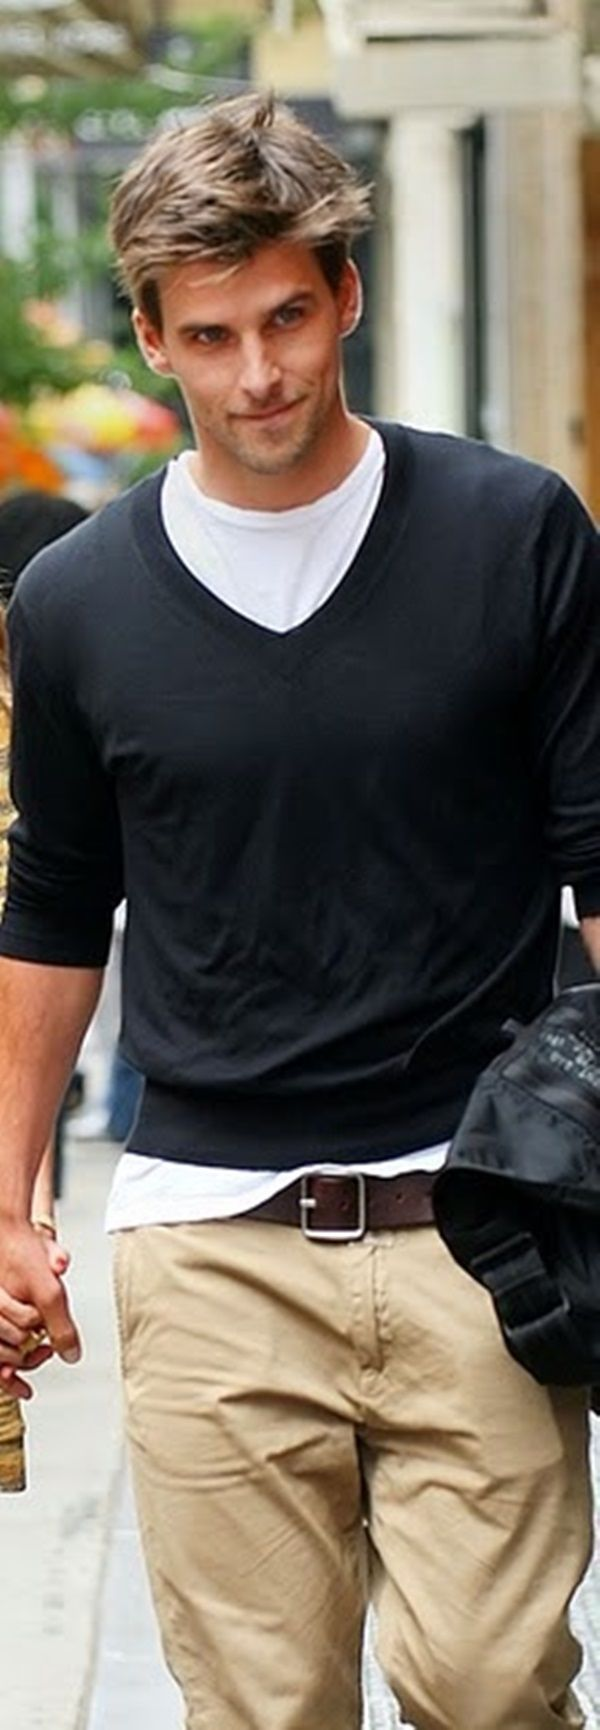 Men's Casual Fashion Style: 50 Looks to Try | http://www.stylishwife.com/2014/03/mens-casual-fashion-style-50-looks-to-try.html